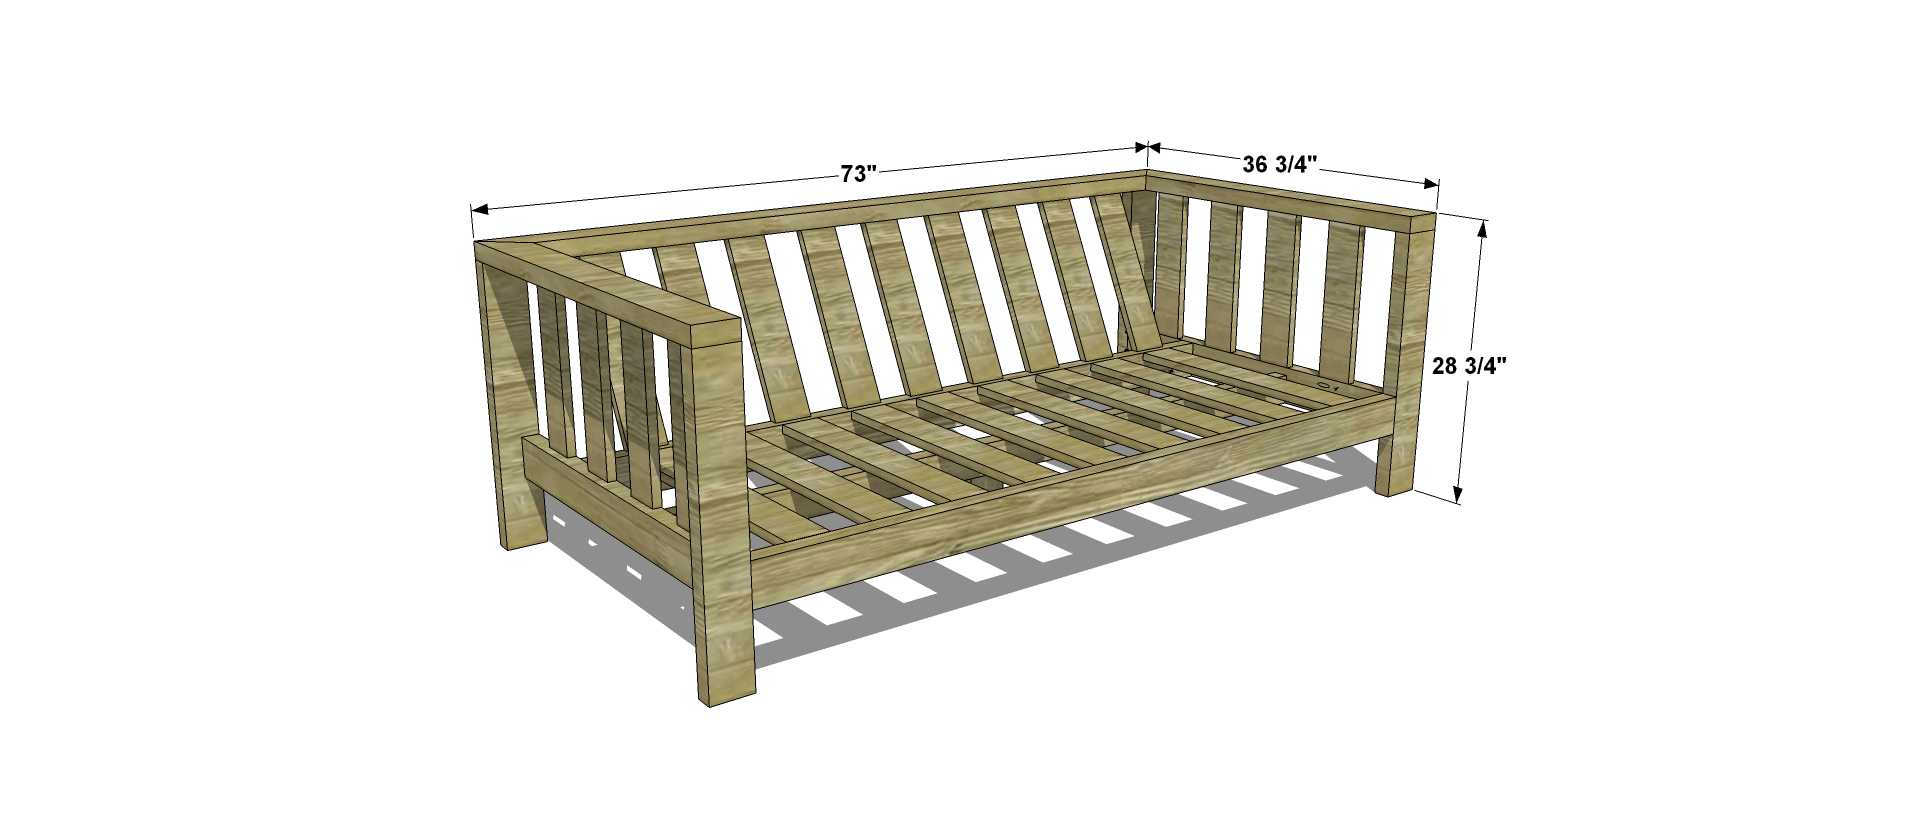 Dimensions For Free DIY Furniture Plans // How To Build An Outdoor Reef  Sofa With